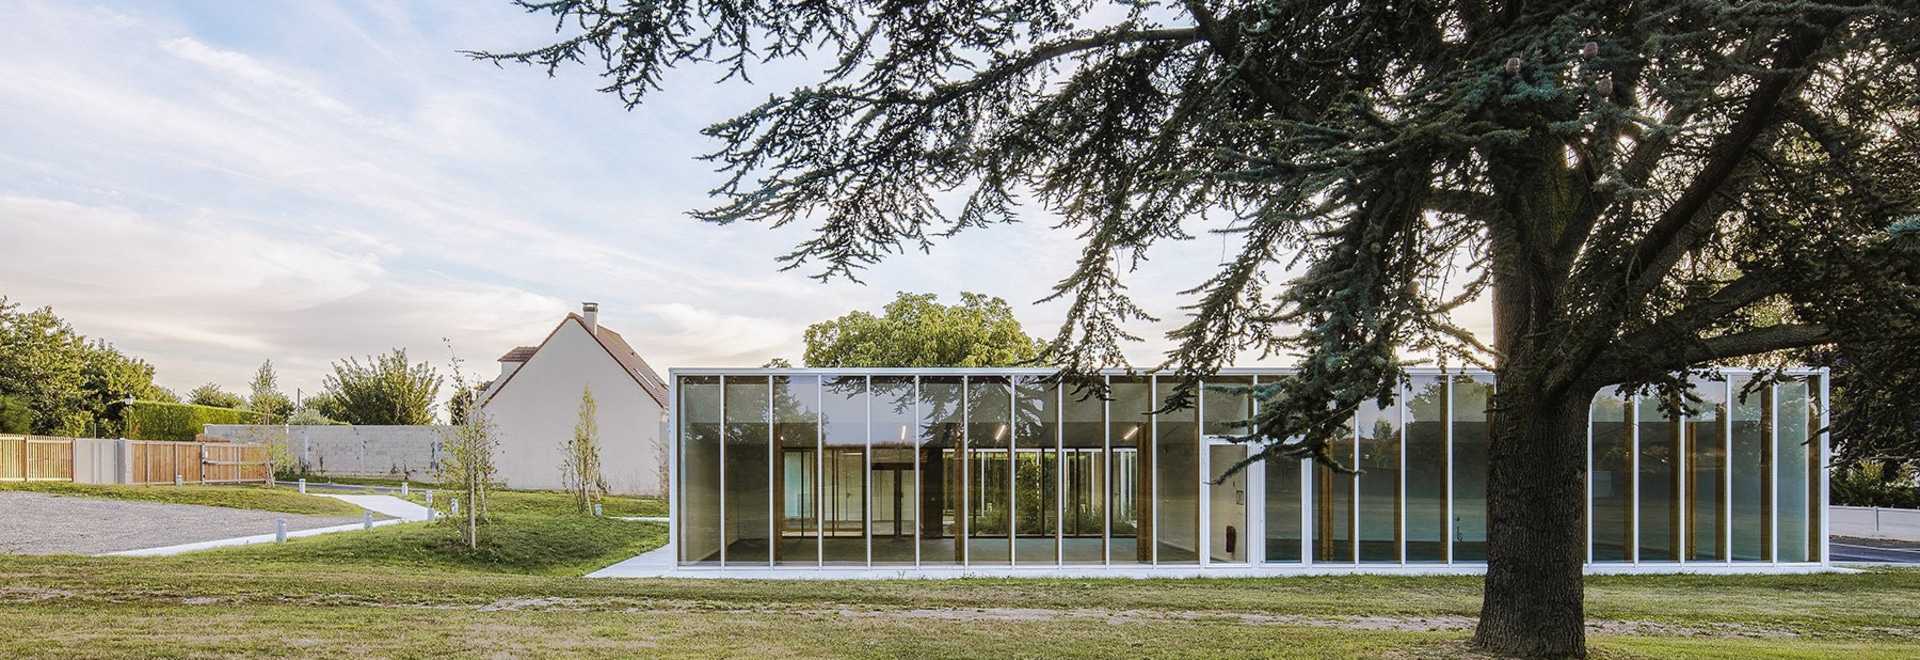 NZI architectes applies glazed façades to bring light into leisure center in france